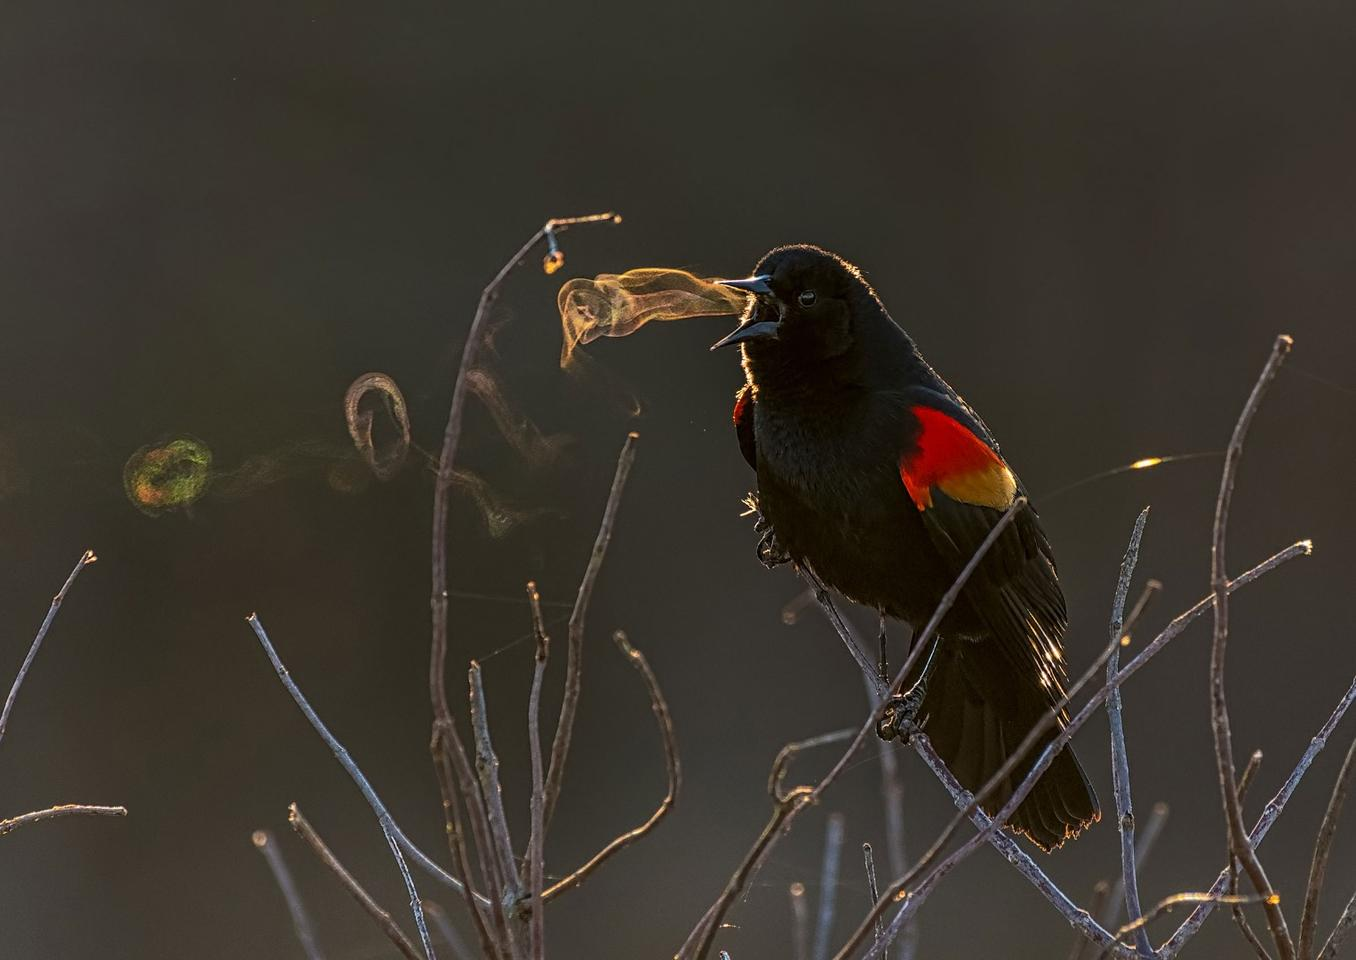 This year's Grand Prize-winning image entitled Red-winged Blackbird, shows the smoke-ring effect of the songbird singing on a crisp country morning